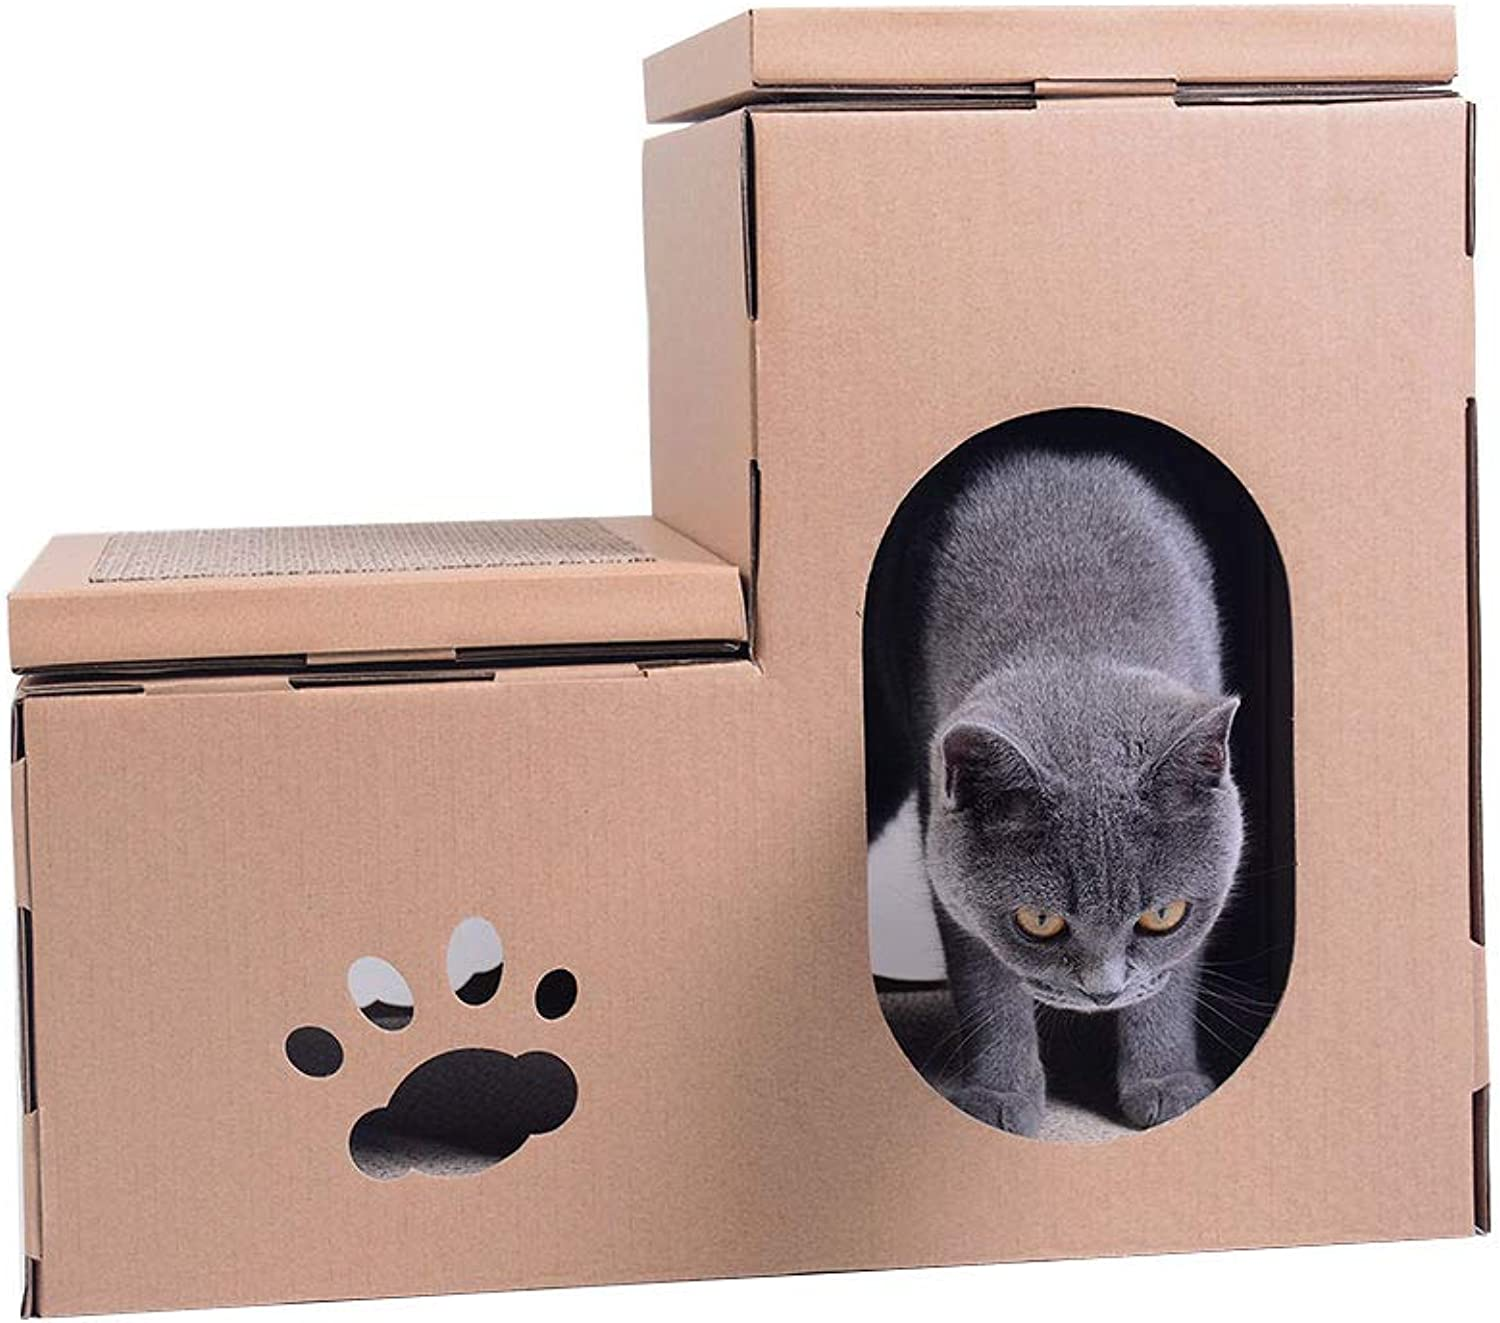 DIY Cat Room Corrugated Cat Litter Cat House Entertainment Rest Dualuse Large Cat Toy Cat Grinding Claw Cat Scratch Board ( Design   1 )